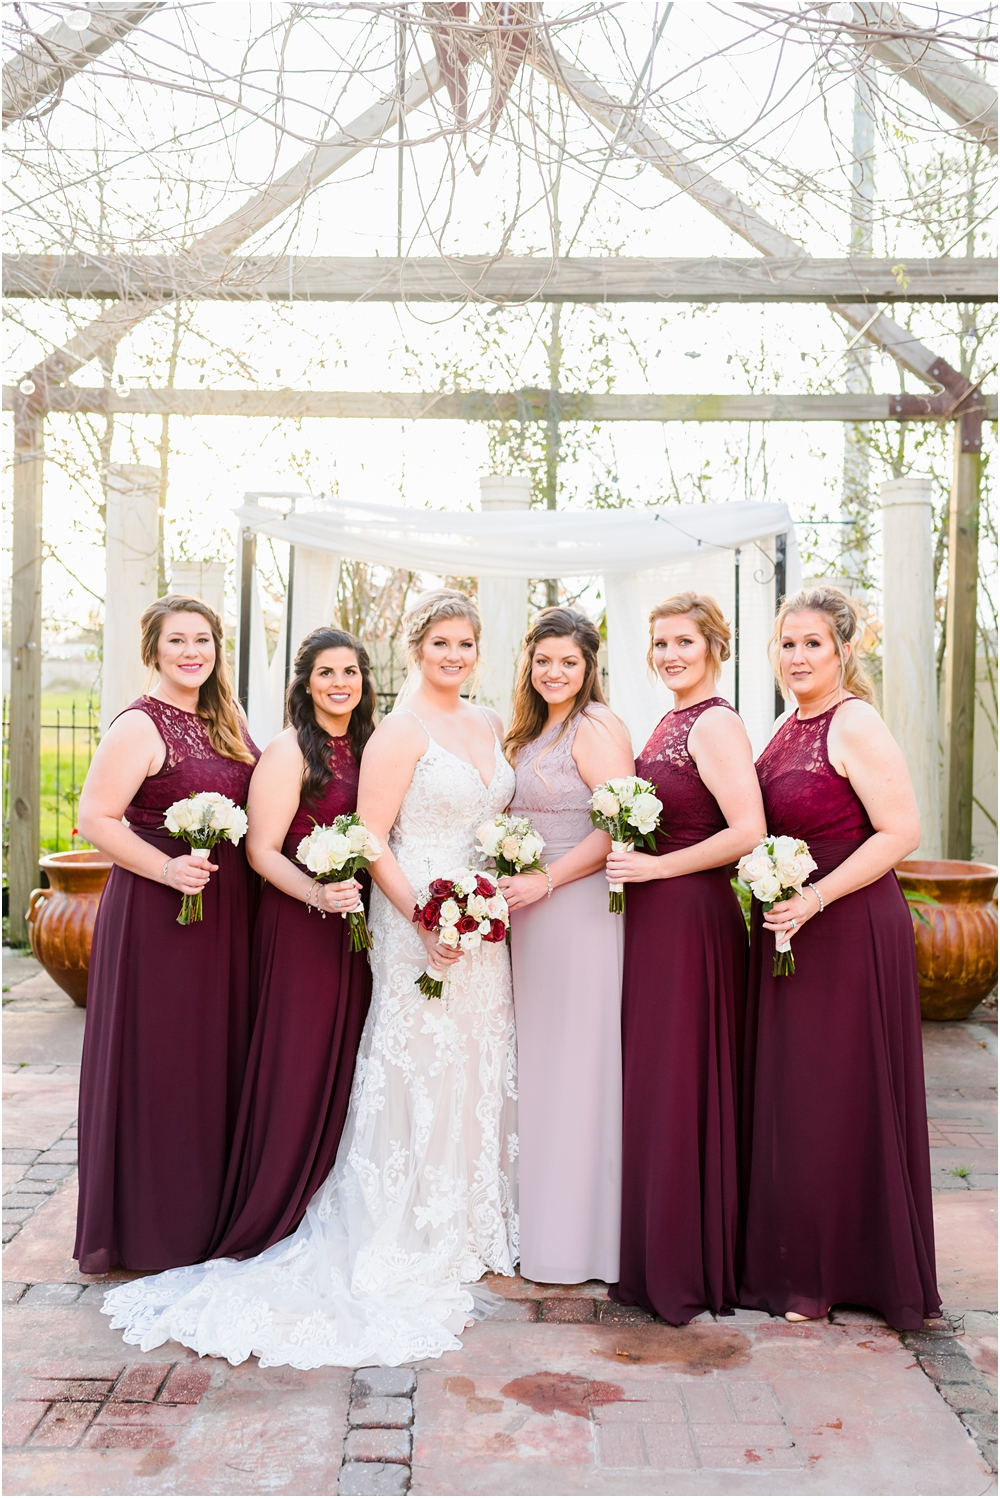 baton-rouge-gabrielle-house-wedding-kiersten-stevenson-photography-104.jpg